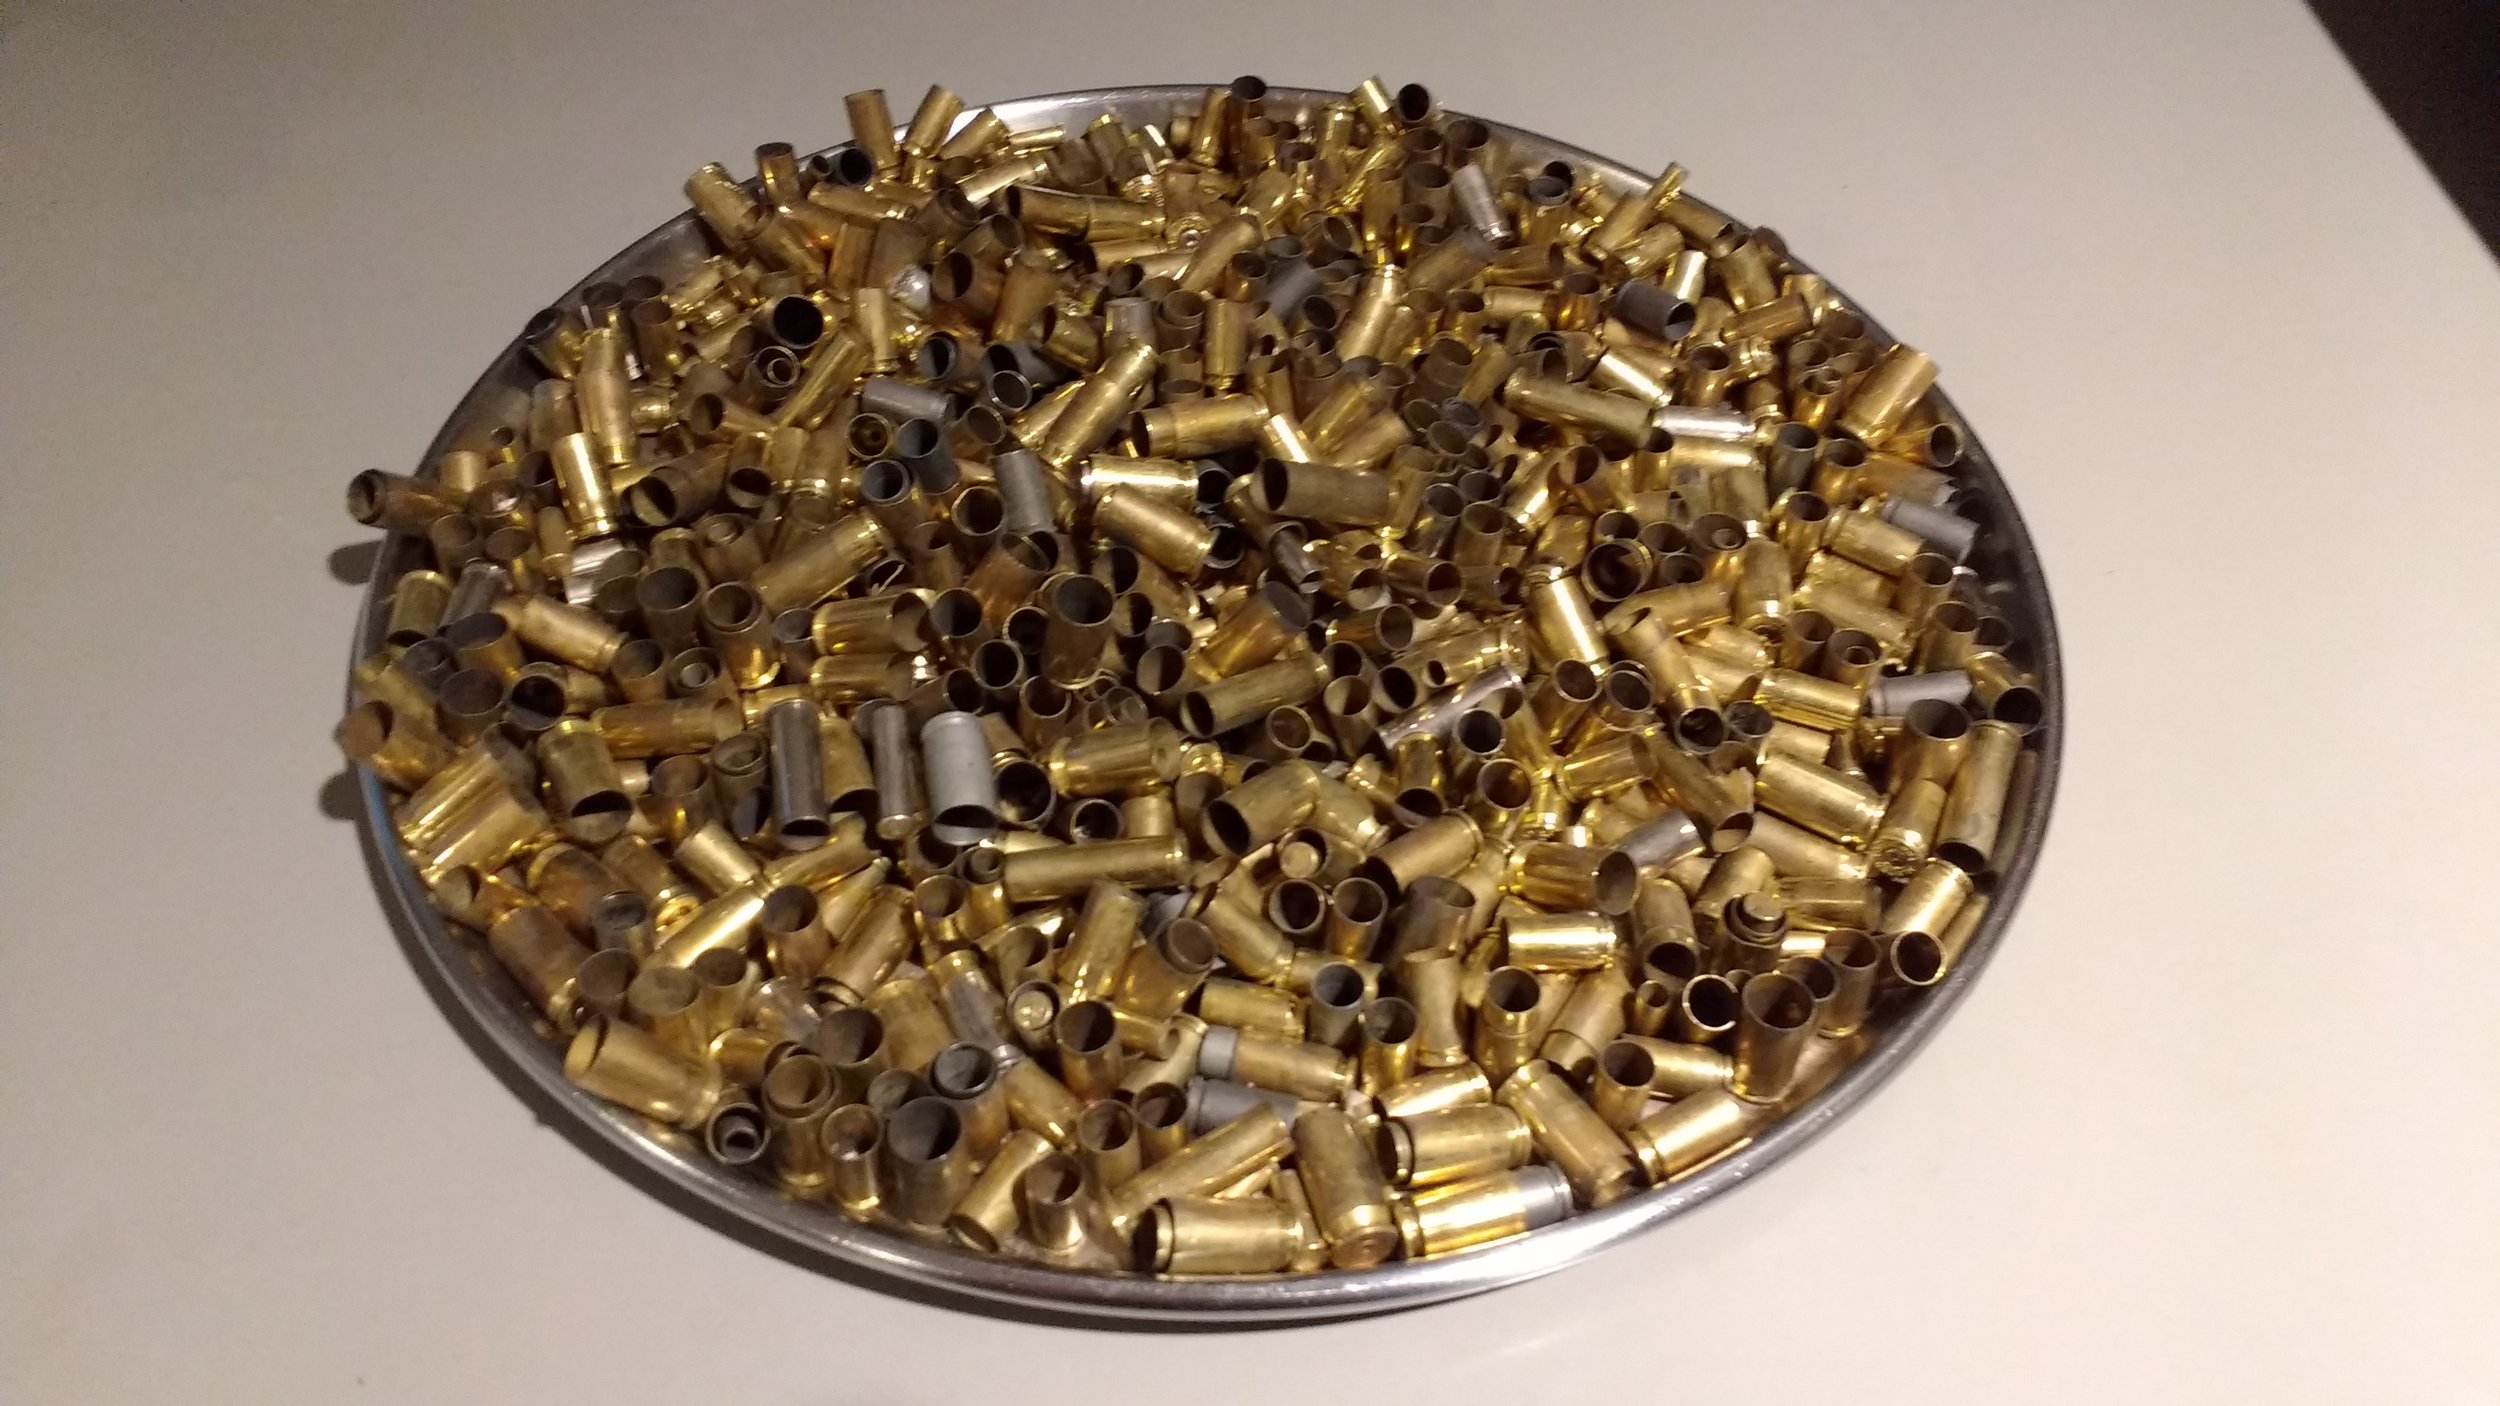 Shell Casings from bullets